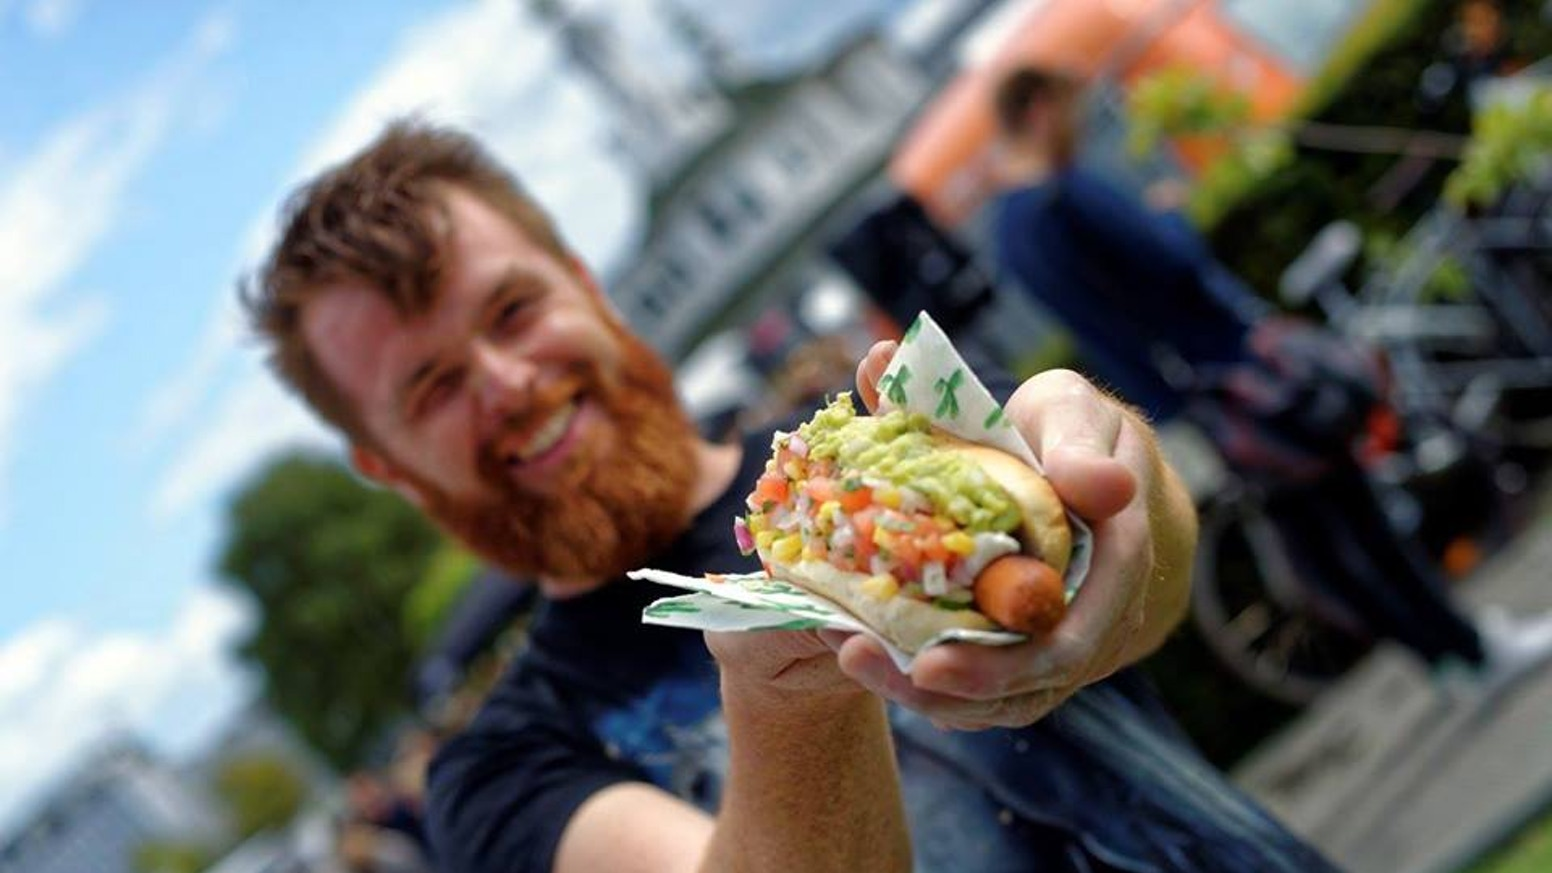 Plantepølsen's Vegan Hotdog Diner in Copenhagen is the top crowdfunding project launched today. Plantepølsen's Vegan Hotdog Diner in Copenhagen raised over $50715 from 180 backers. Other top projects include Buku Babies - World's Coolest & Most Innovative Baby Shoe, THRASH GRASS: Inventing a Genre, and Beyond, Church St. Coffee...